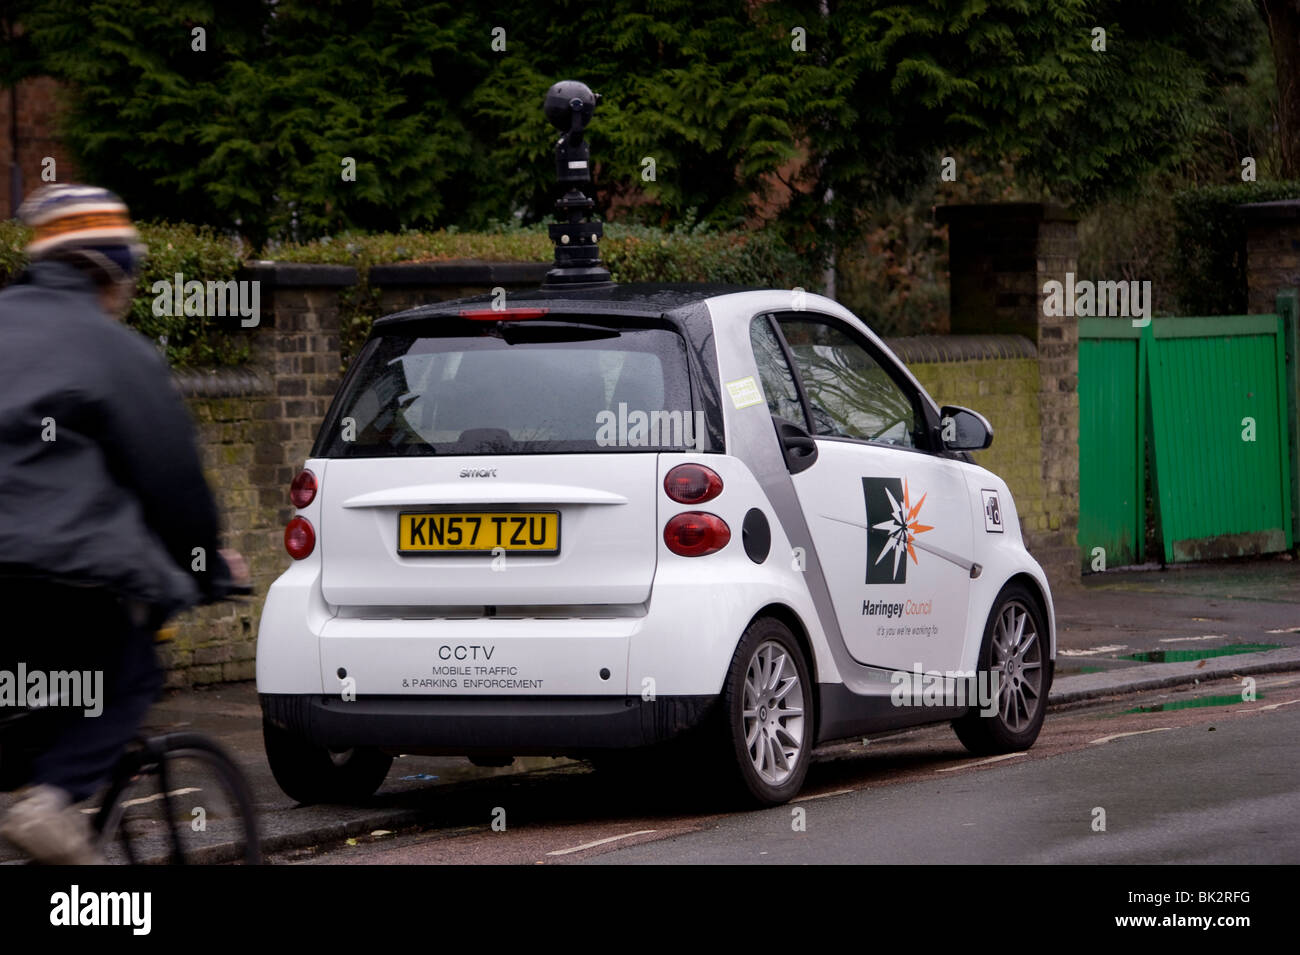 Haringey Council's smart car to enforcing parking control,  replete with a roof mounted swivel camera ... - Stock Image